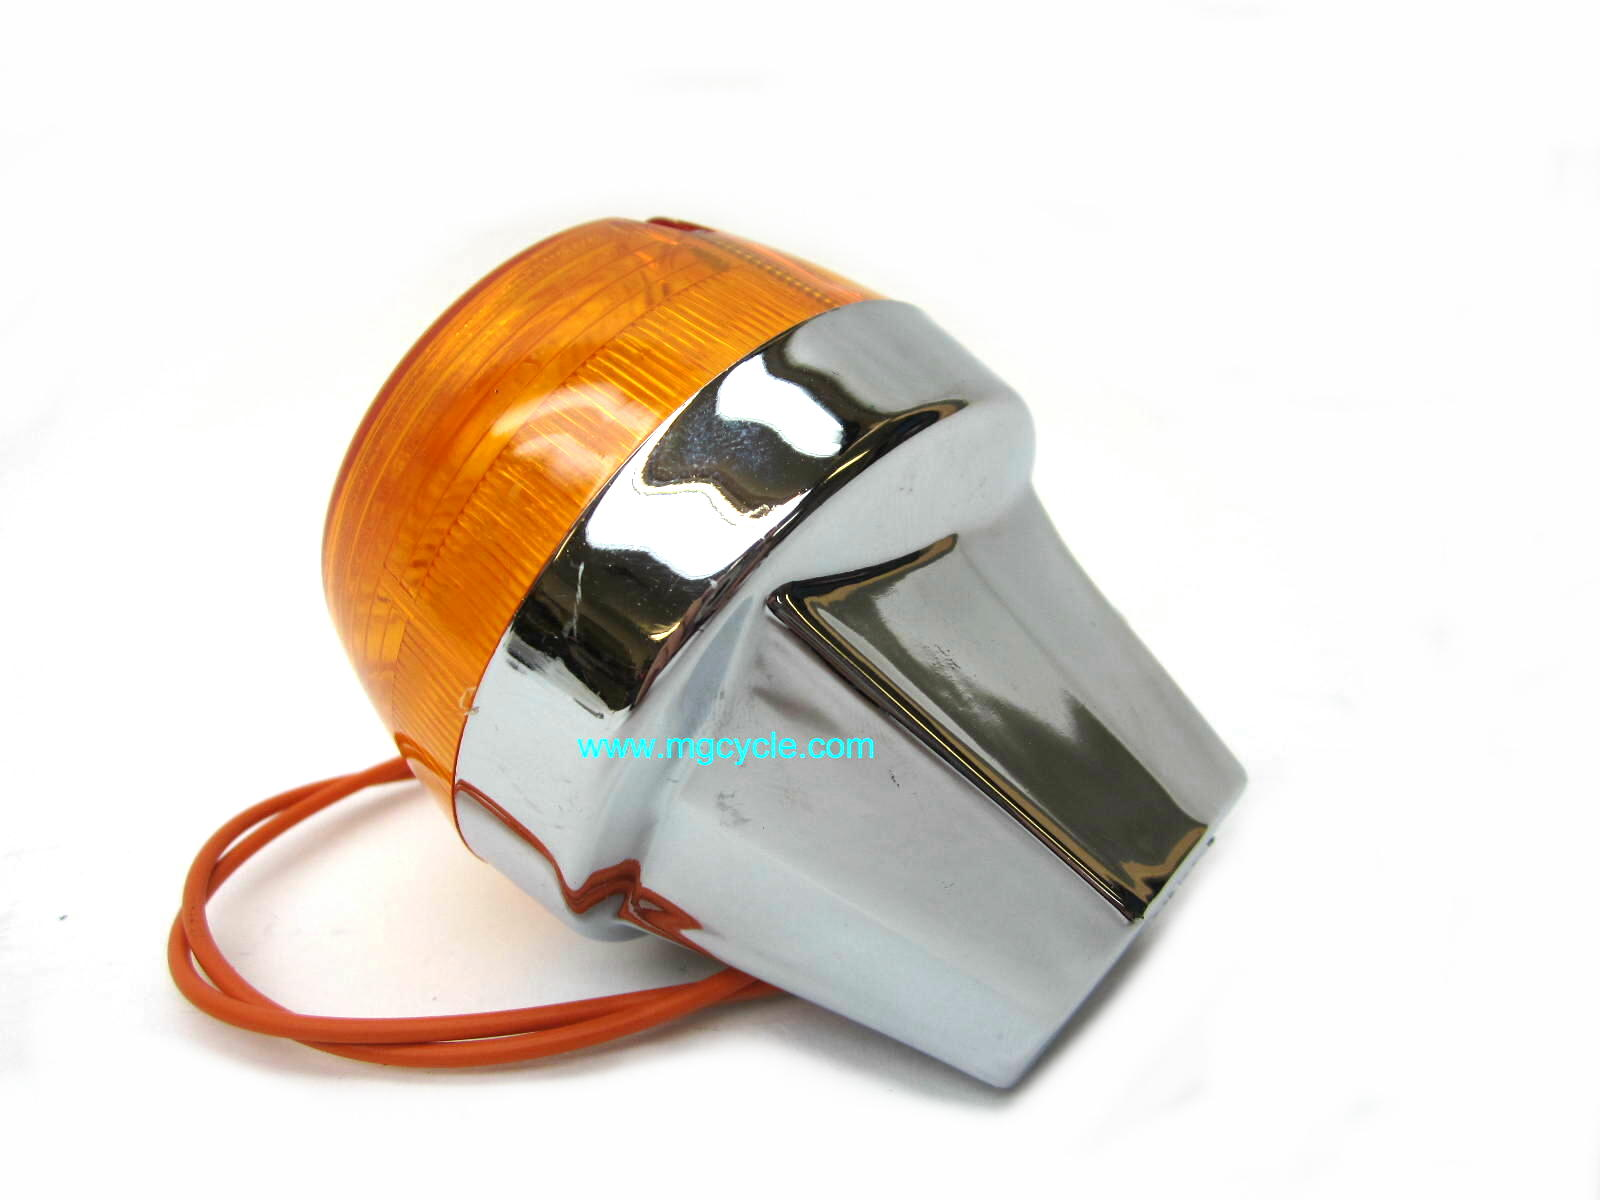 Replica CEV turn signal, chrome T3 T4 Convert G5 Cal 2 V50